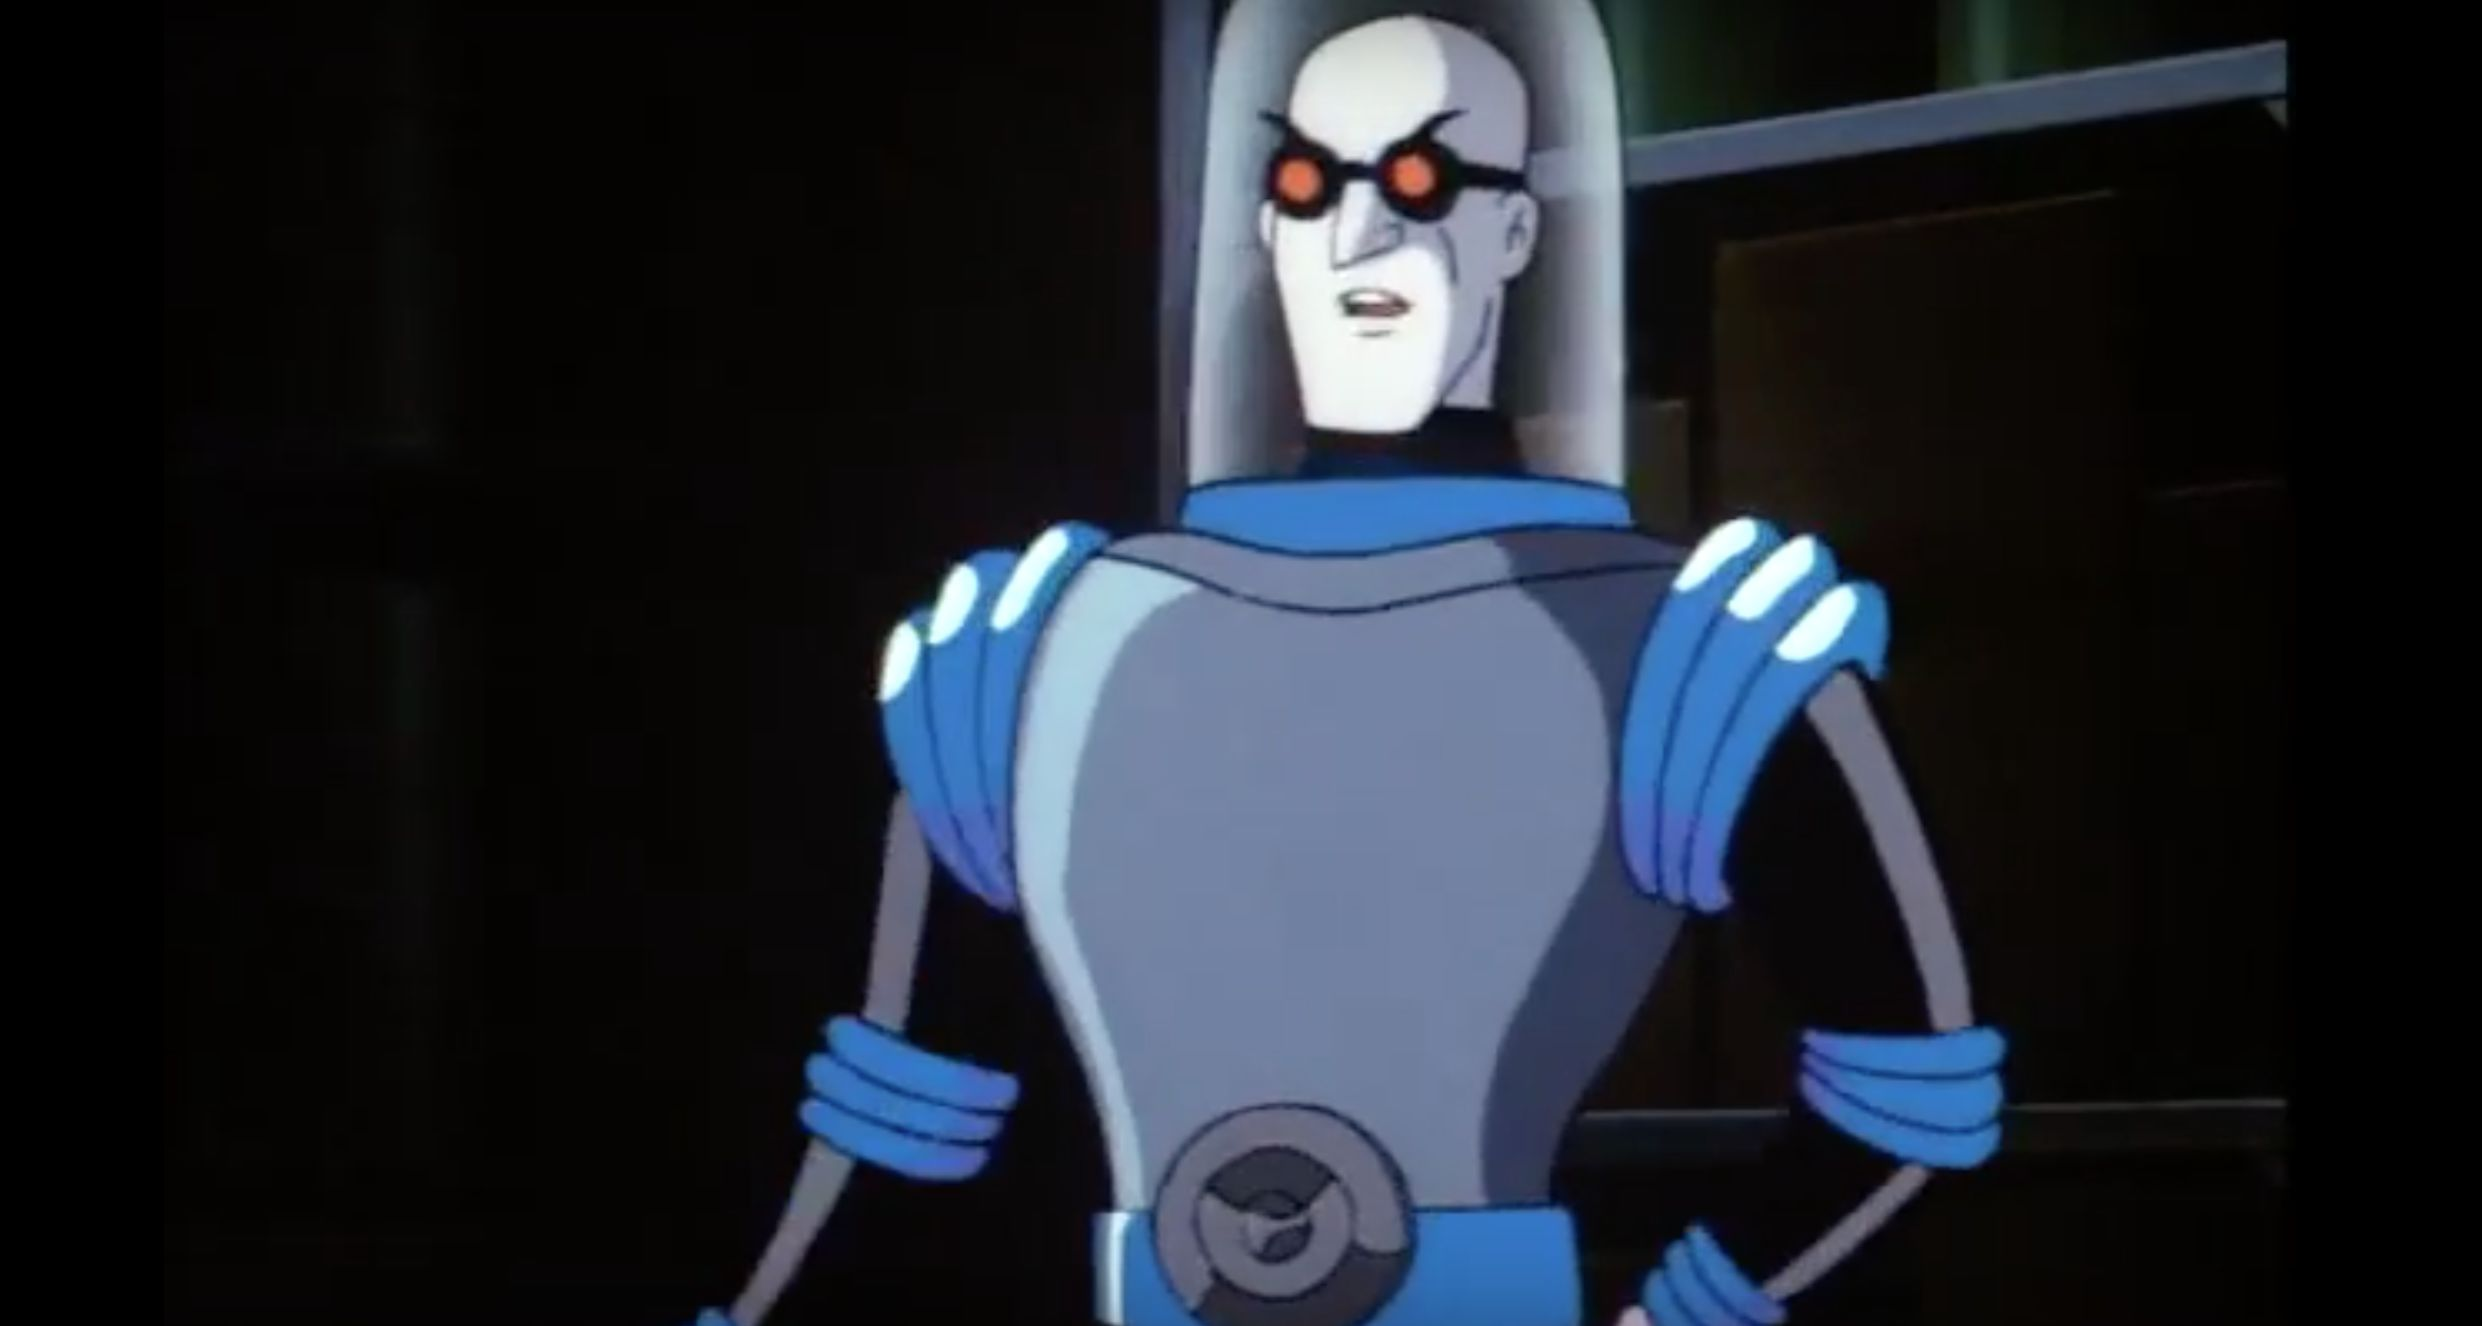 Revelations from the new documentary on Batman: The Animated Series